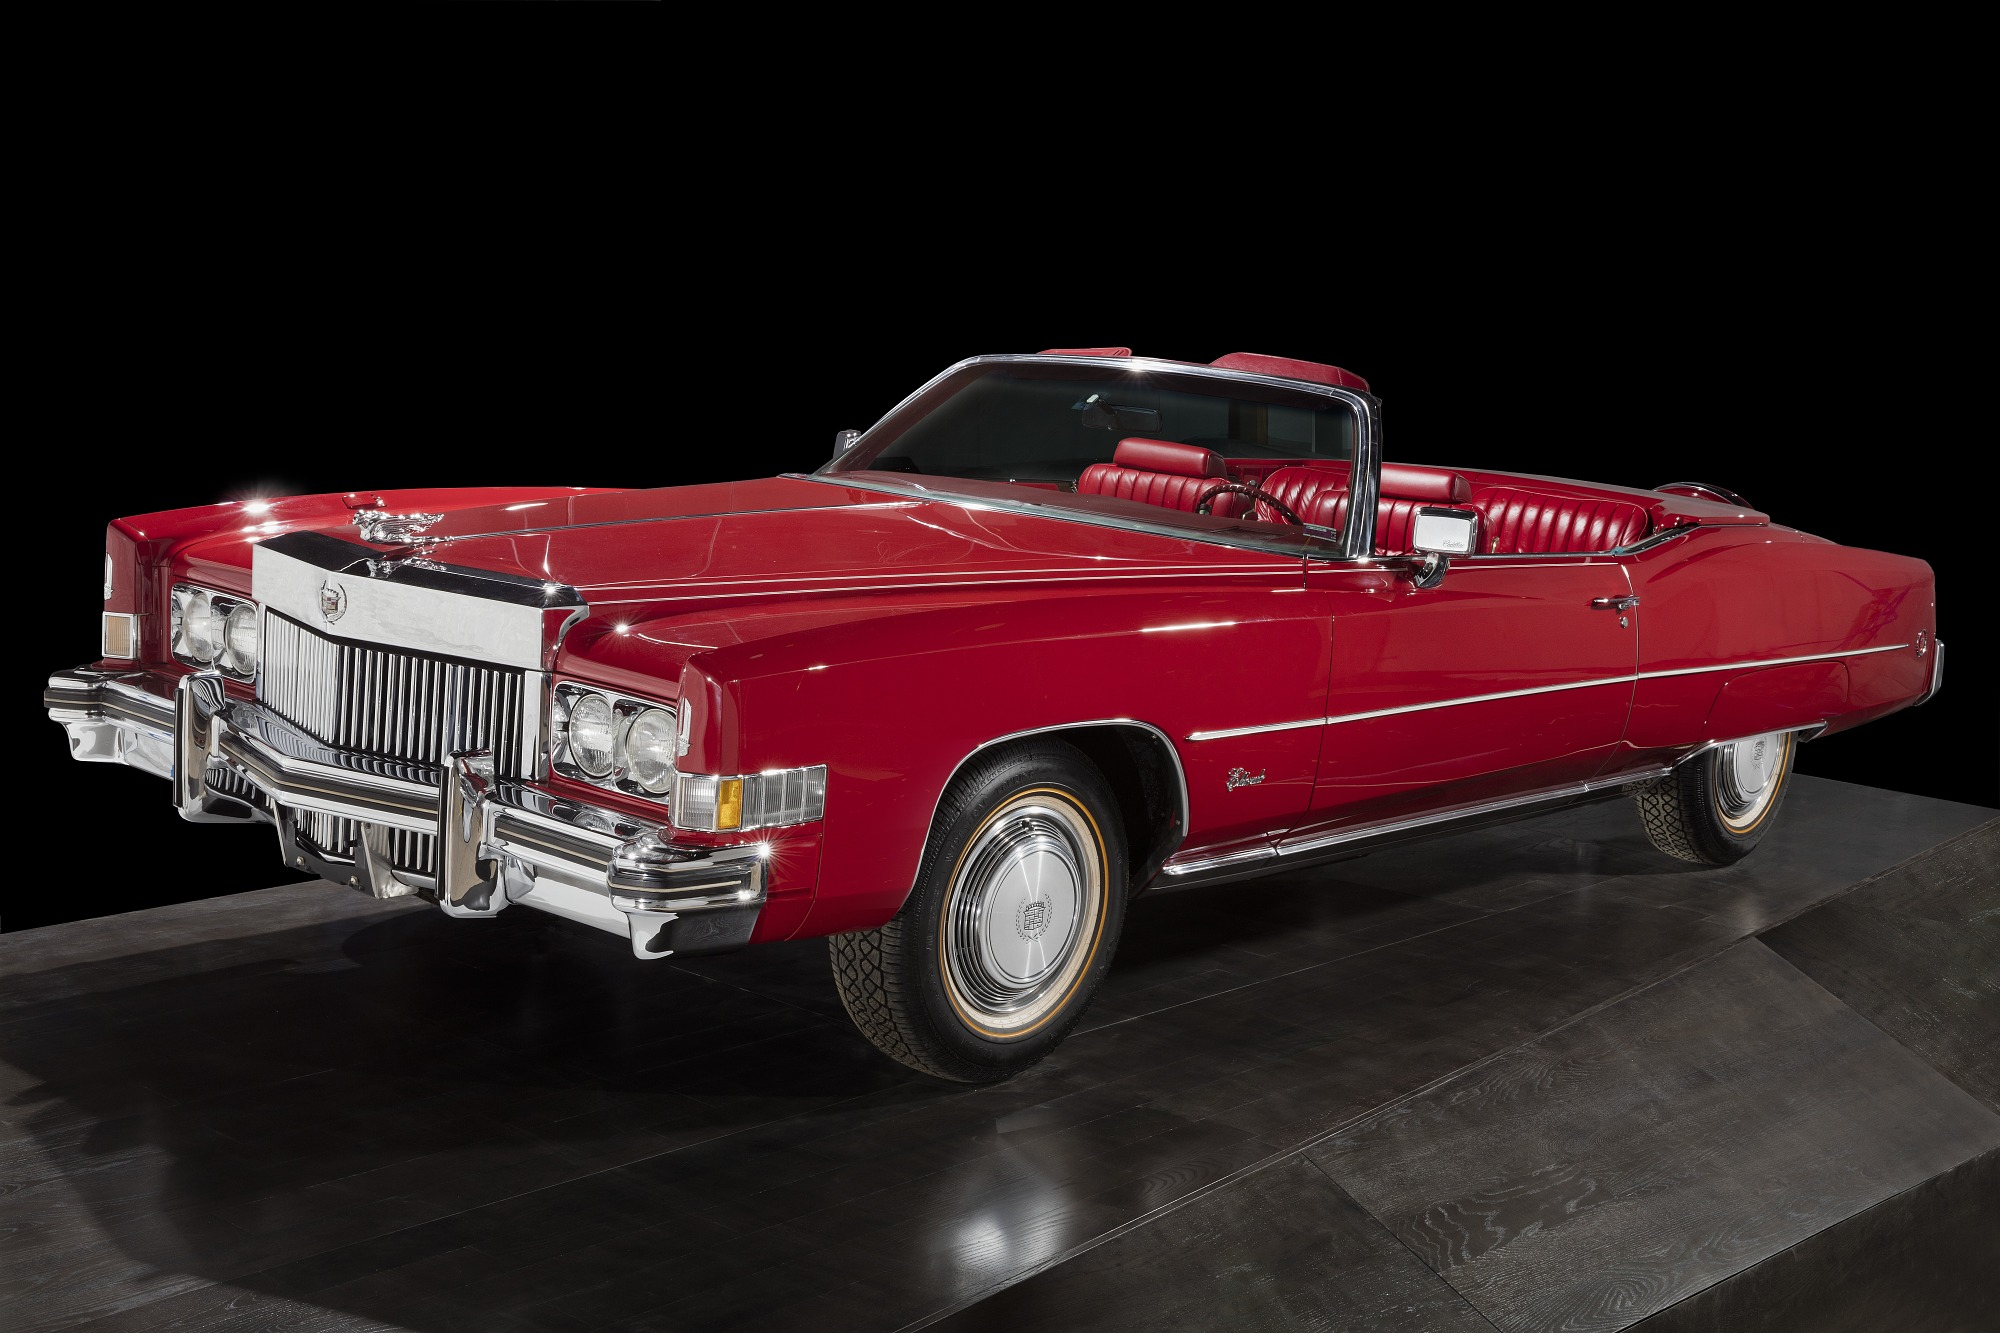 Image 1 for Red Cadillac Eldorado owned by Chuck Berry